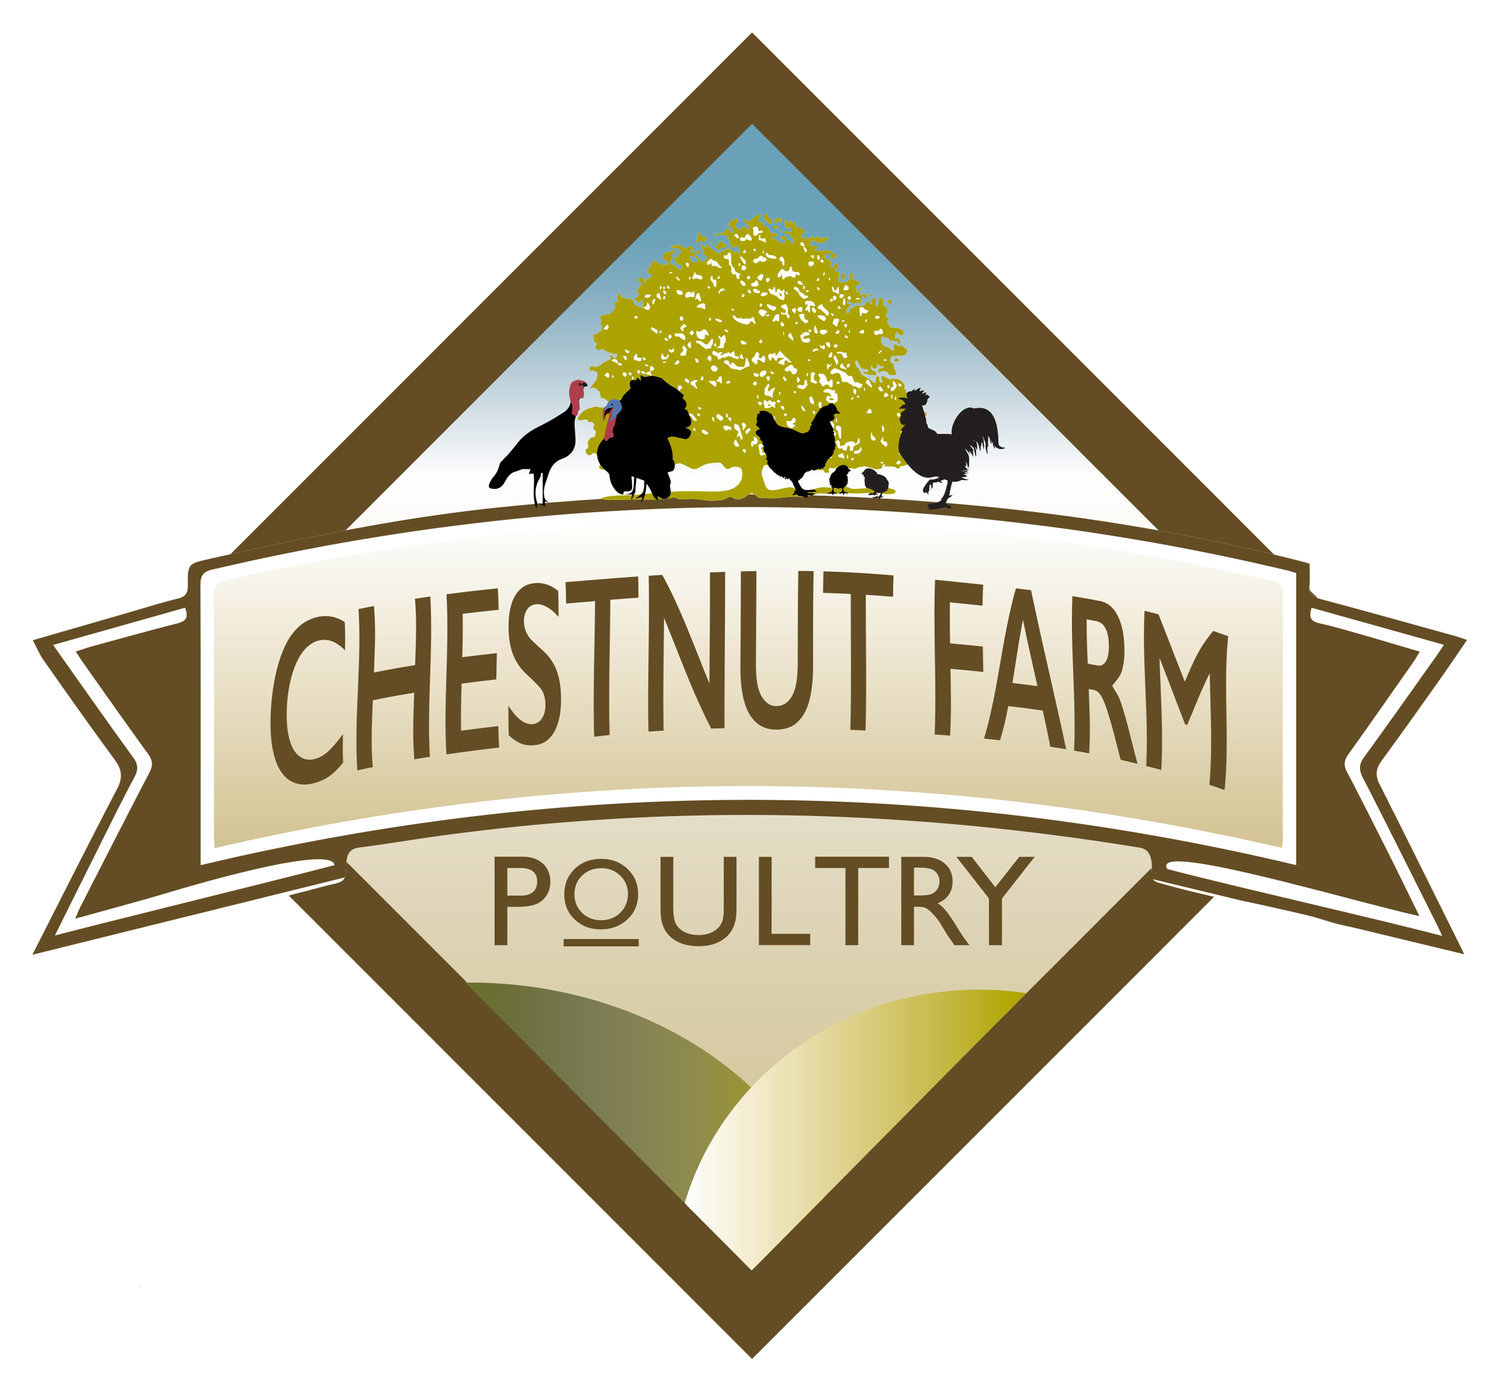 Chestnut Farm Poultry Ltd